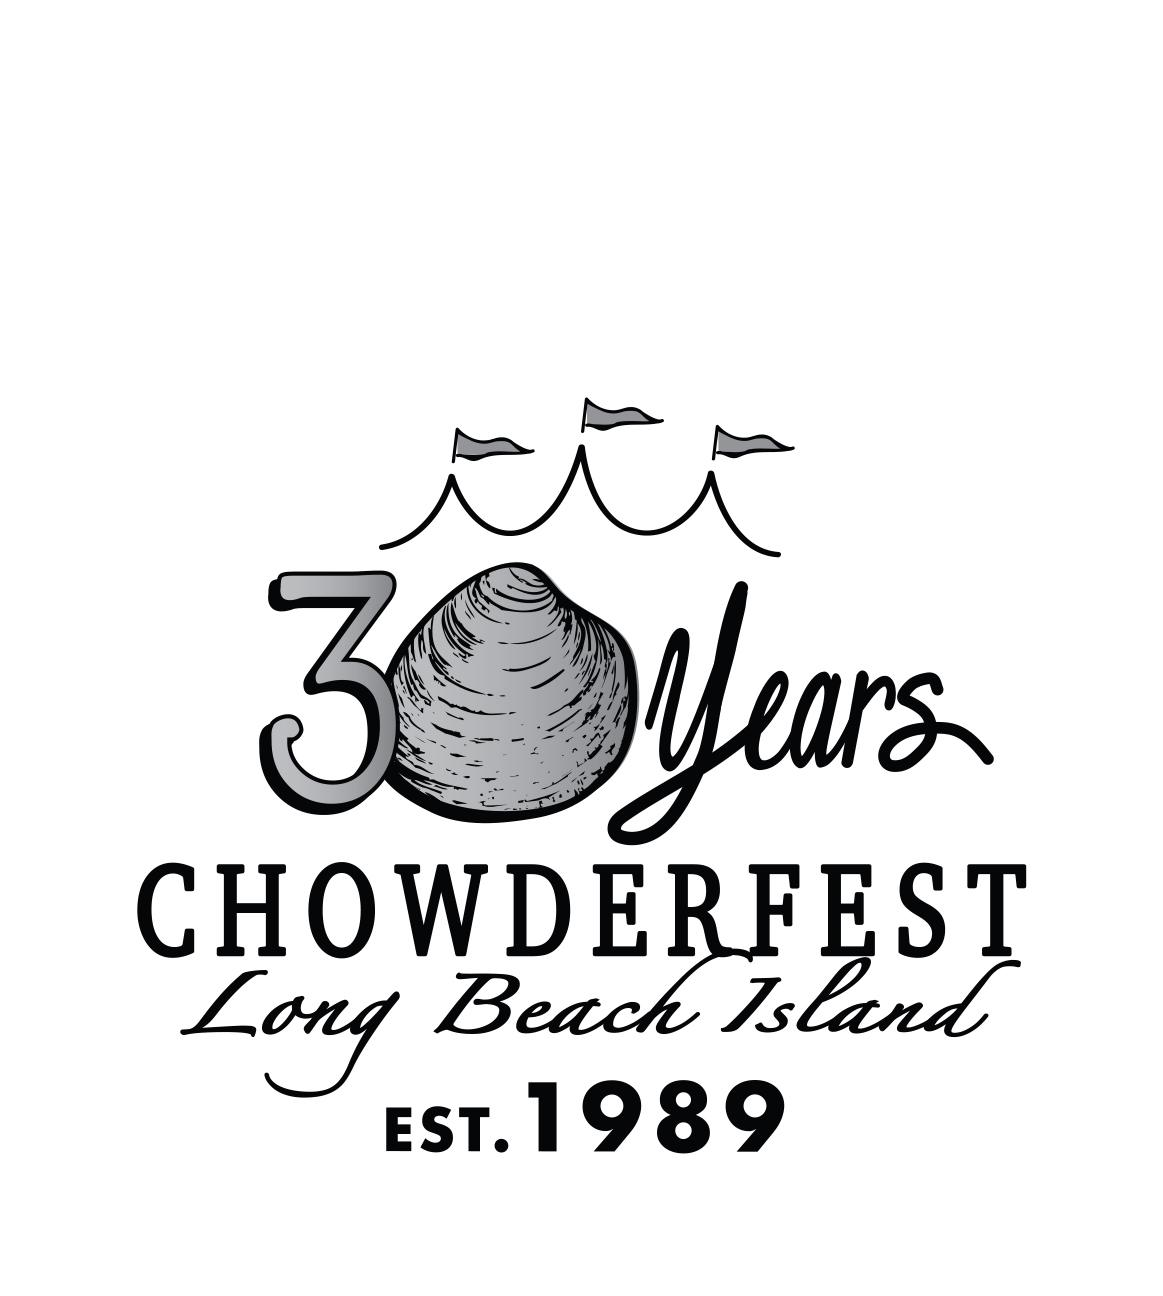 Chowderfest September 29 & 30 2018